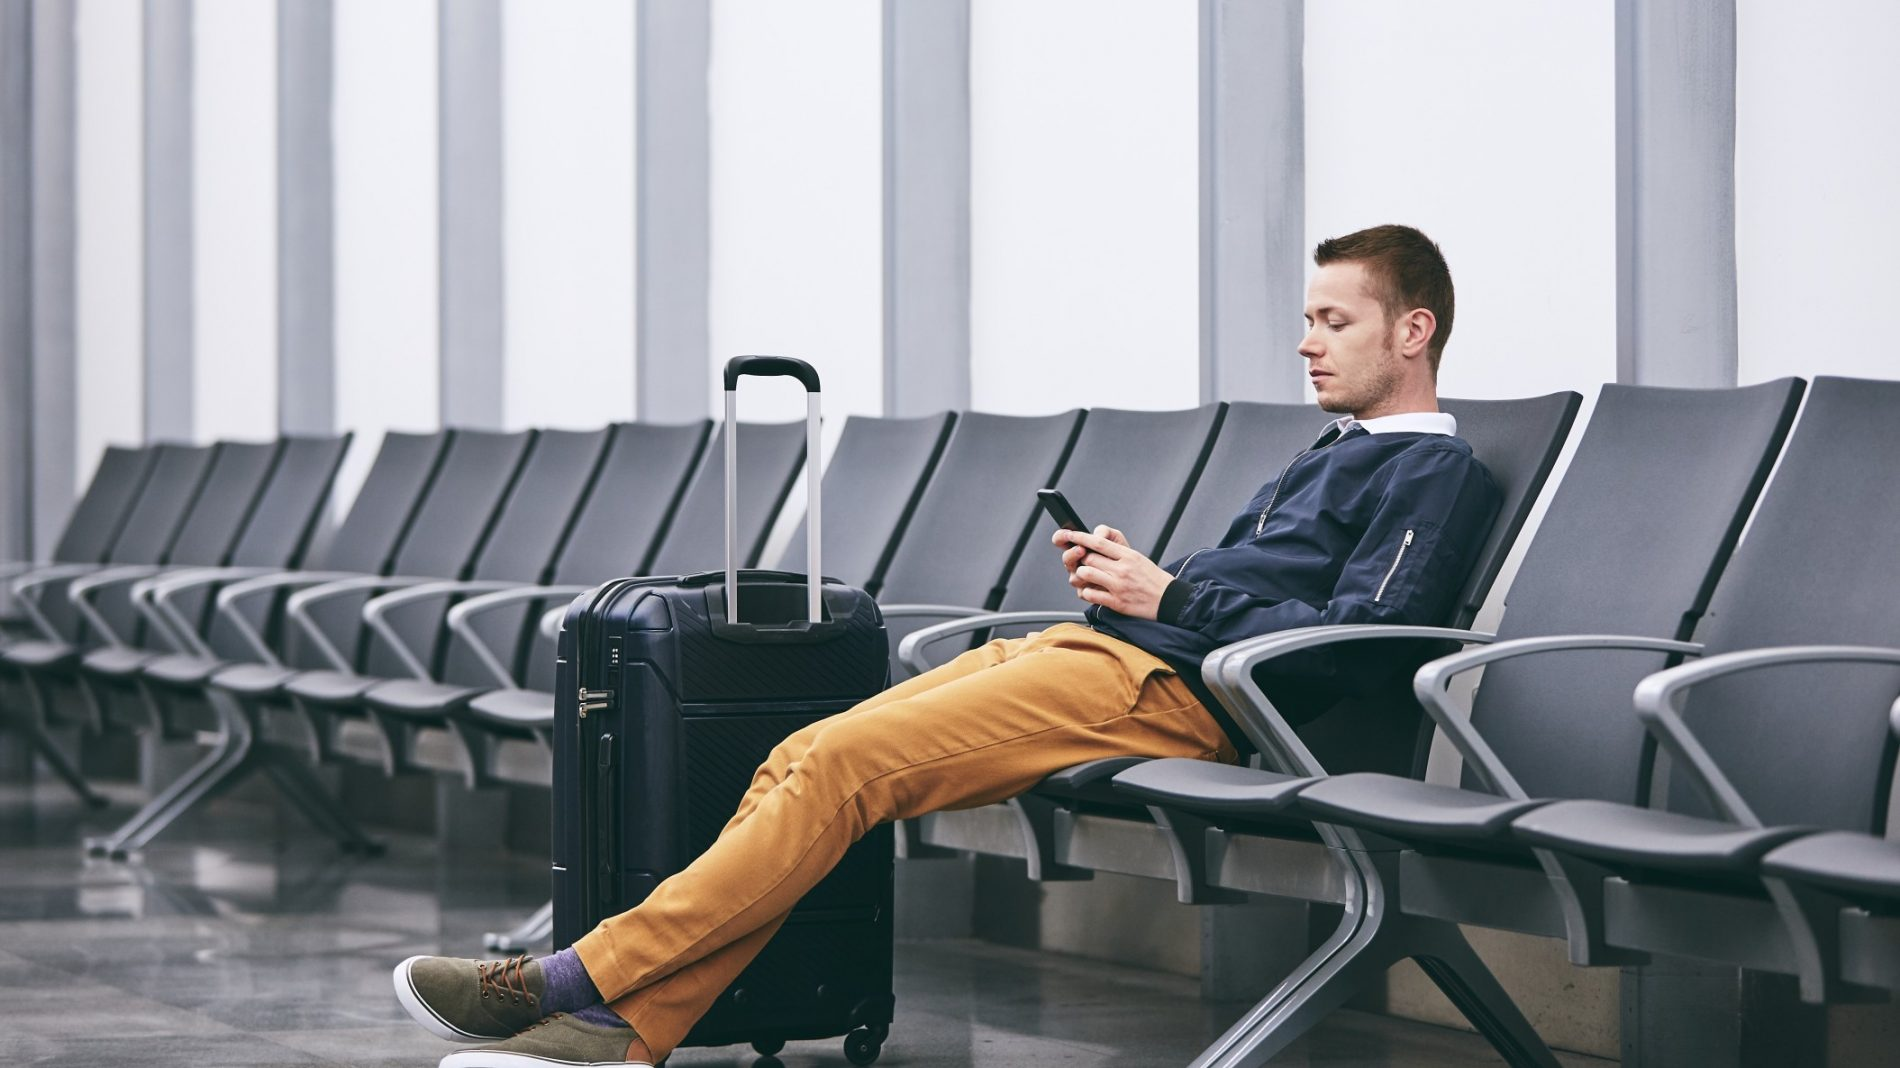 man-traveling-by-airplane-young-passenger-using-phone-waiting-in-airport-terminal_t20_W7B7Y4